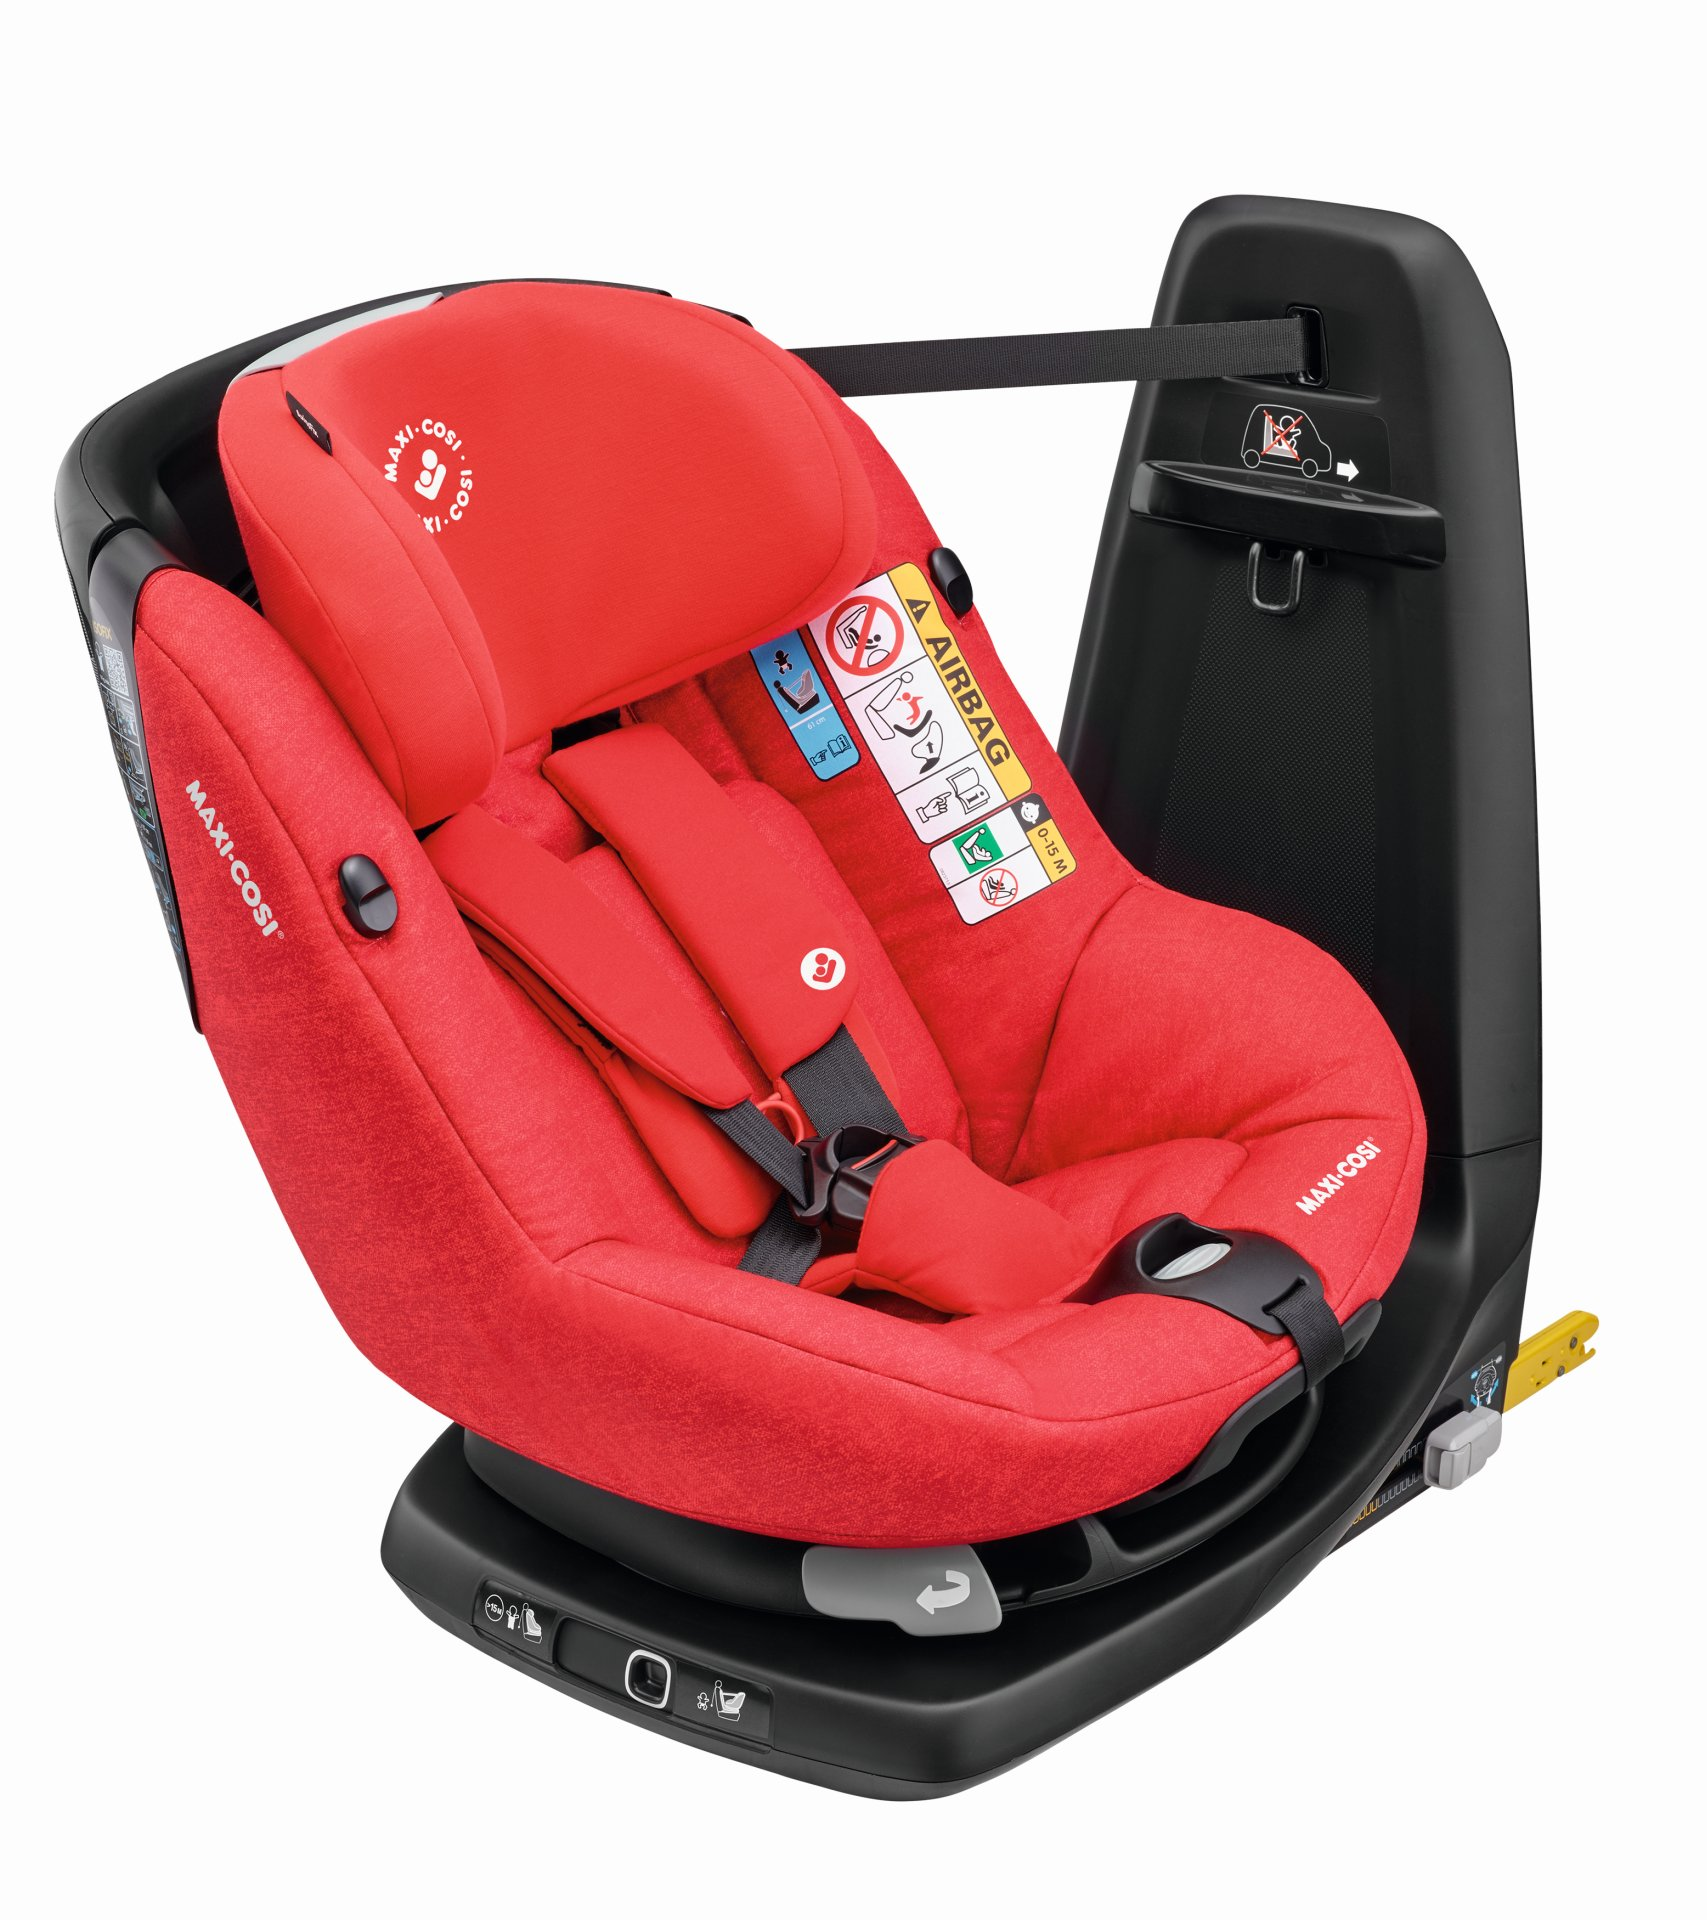 Maxi Cosi Child Car Seat AxissFix I Size Nomad Red 2019